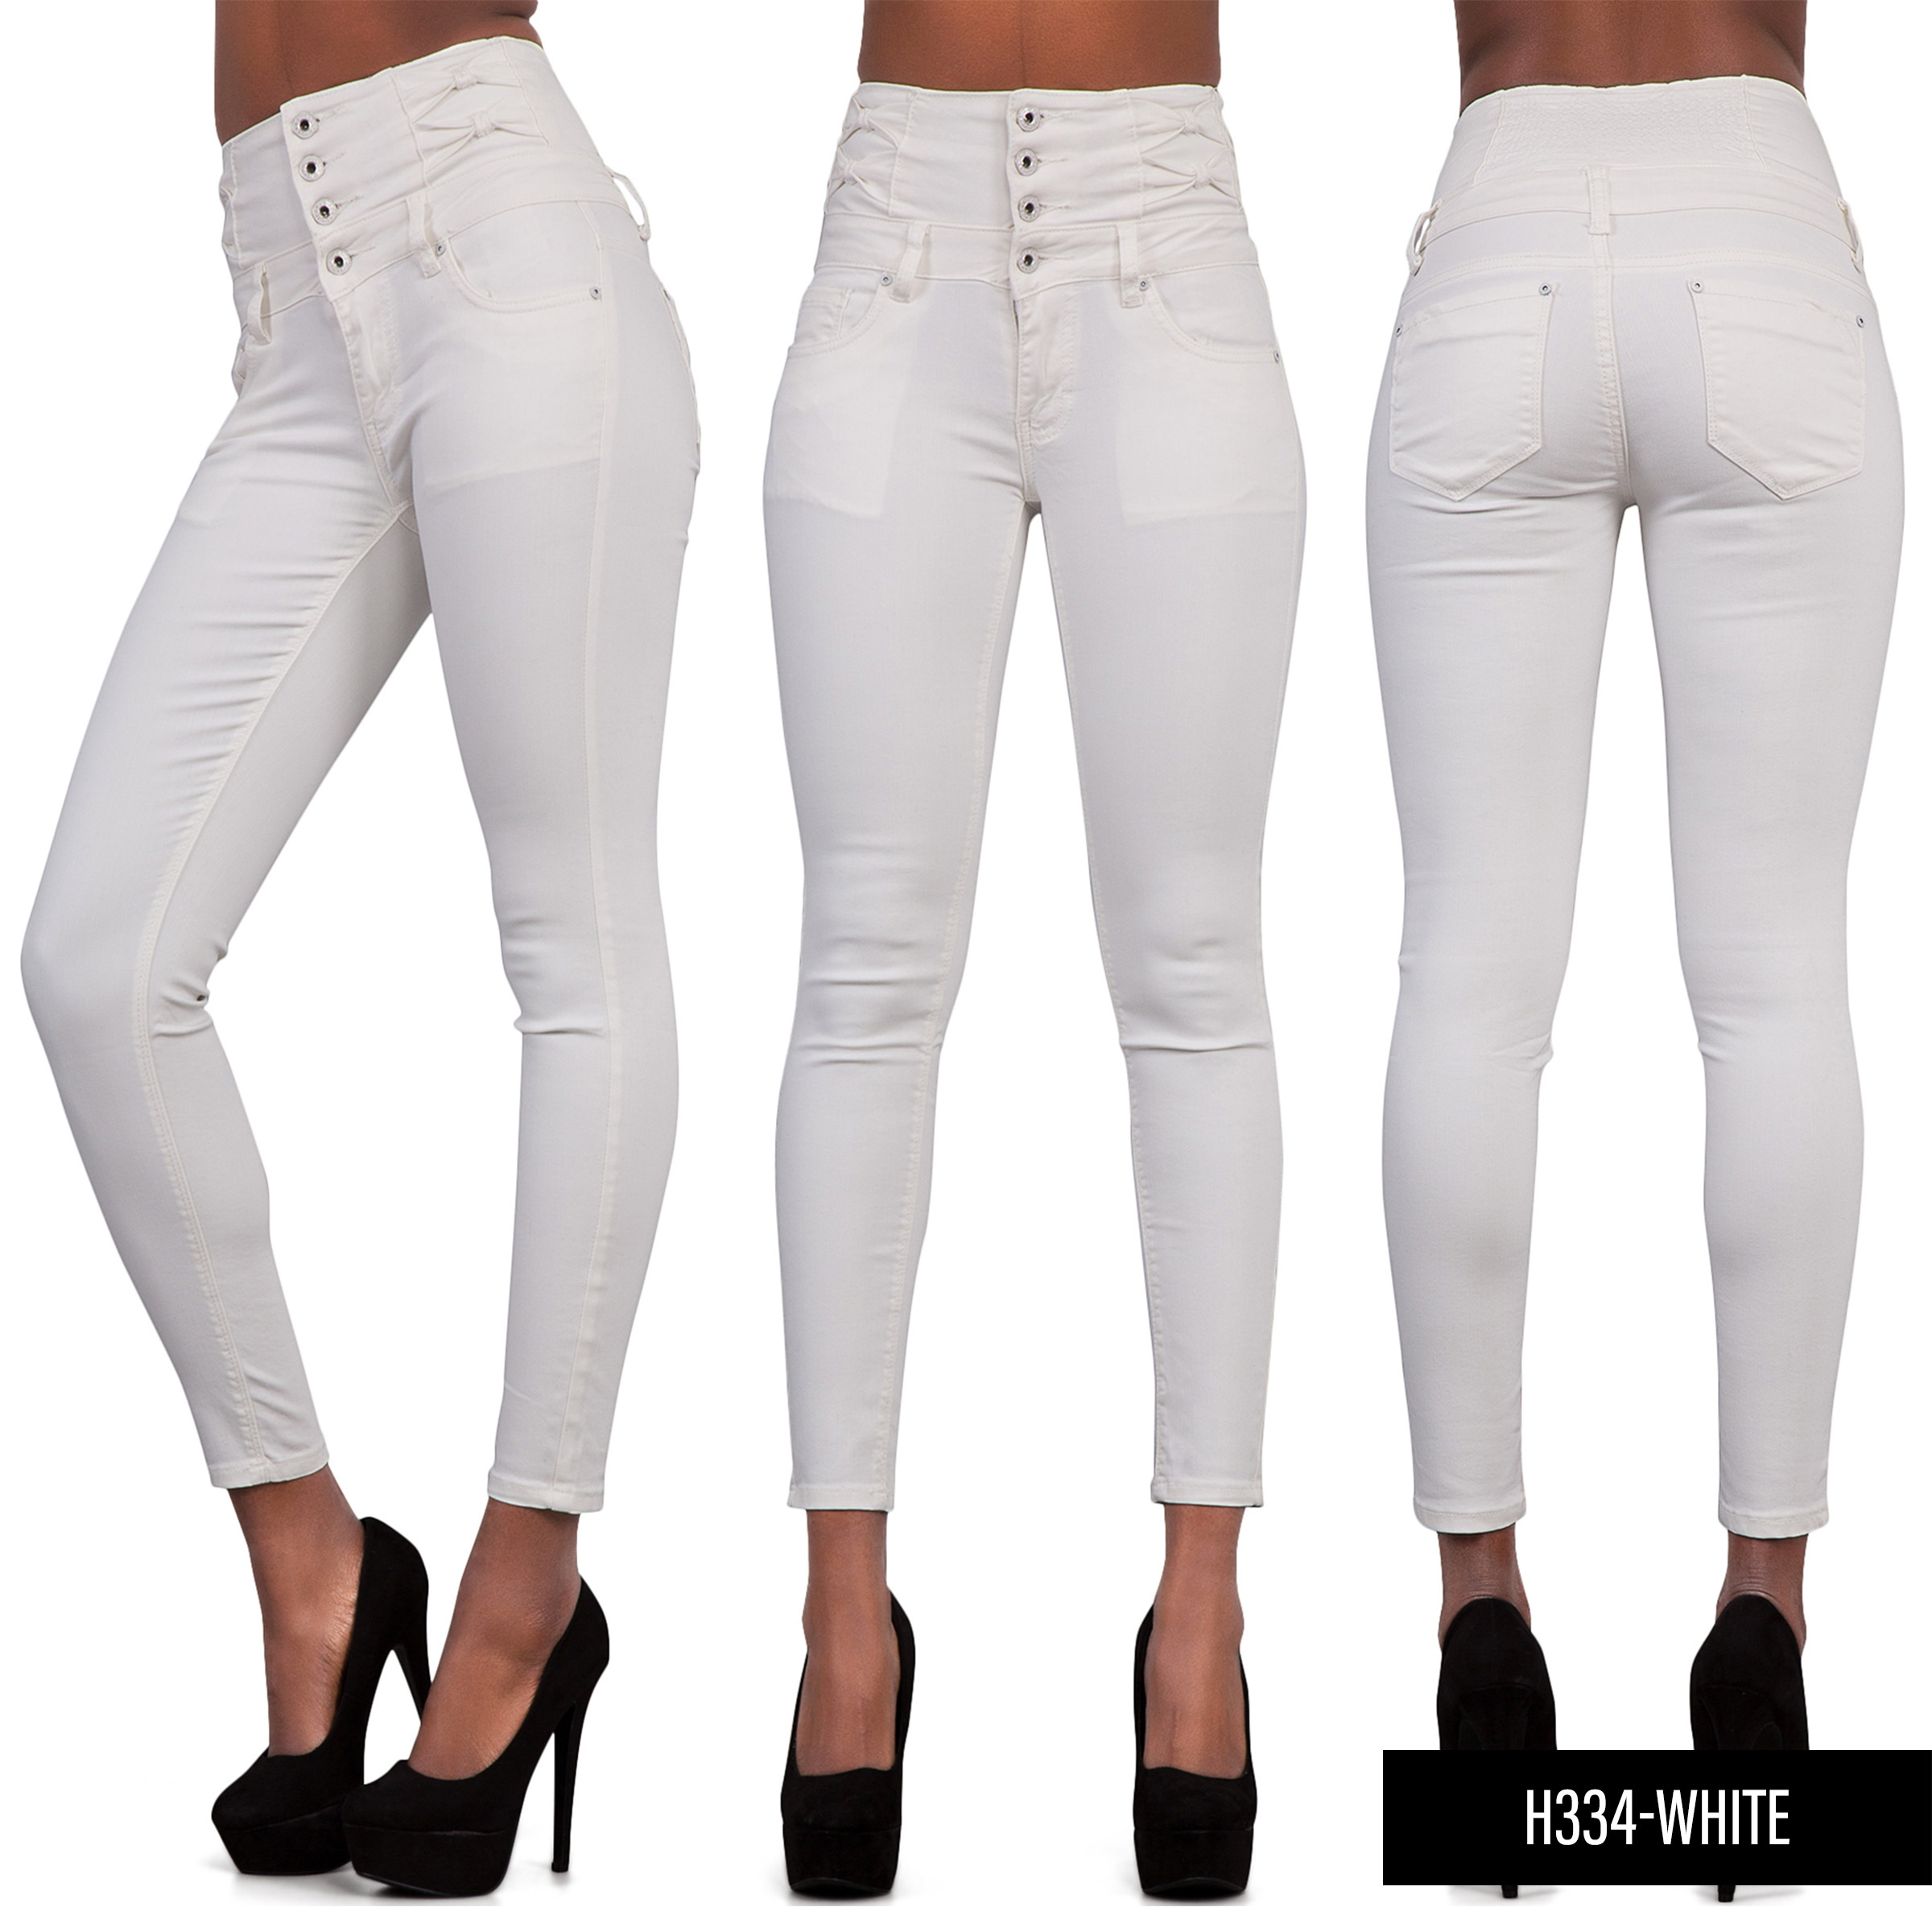 High waisted white jeans south africa